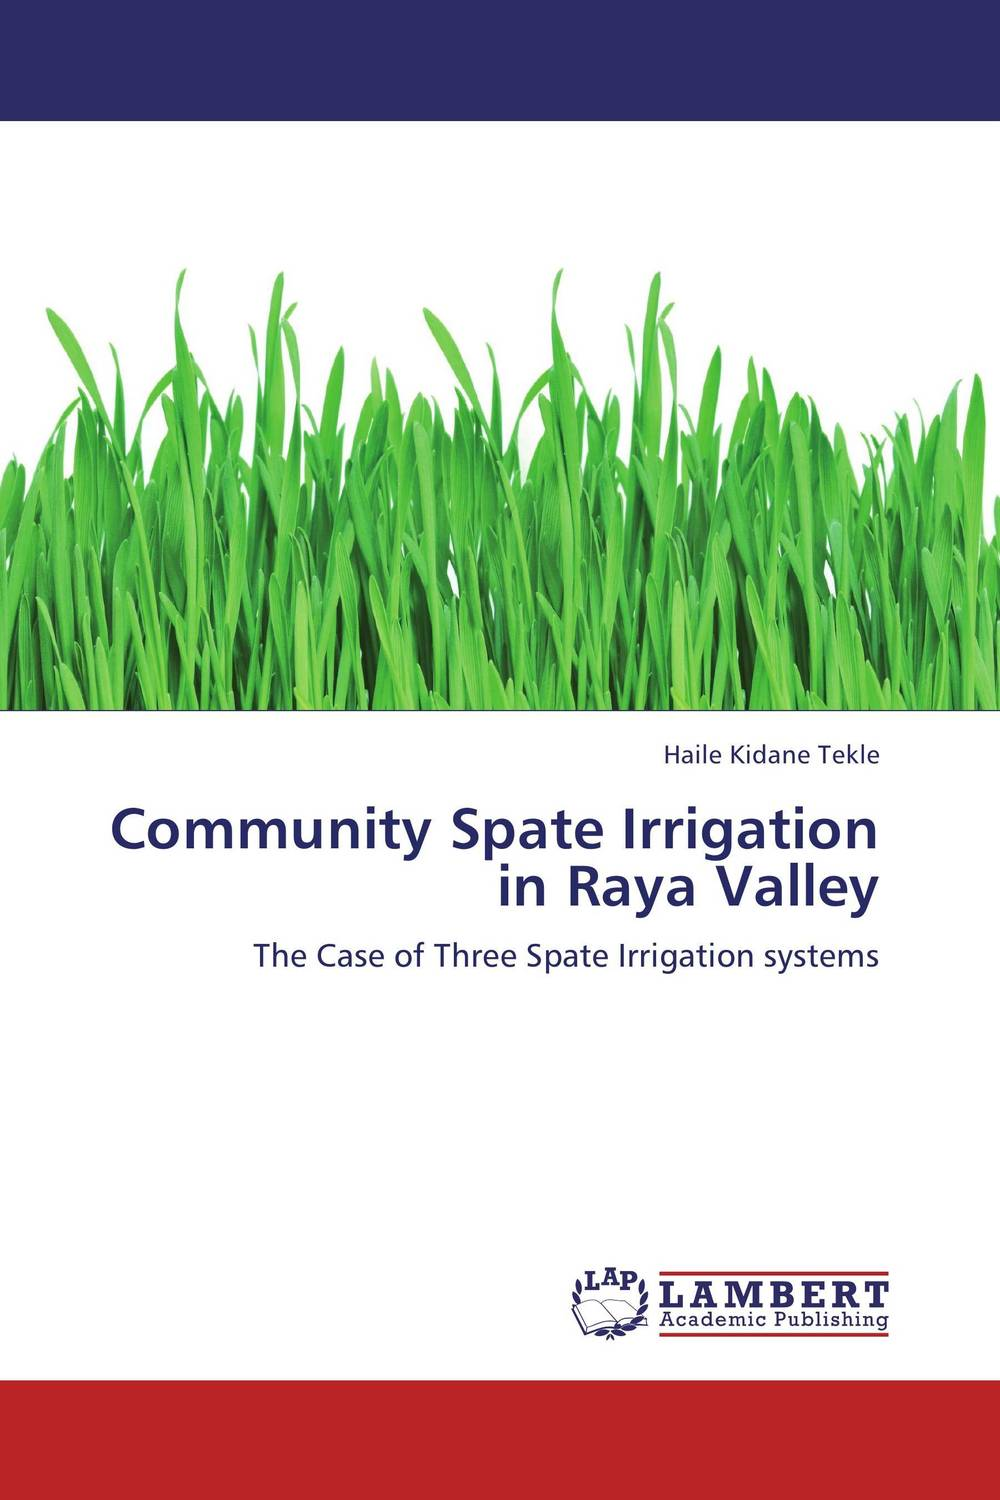 Фото Community Spate Irrigation in Raya Valley cervical cancer in amhara region in ethiopia